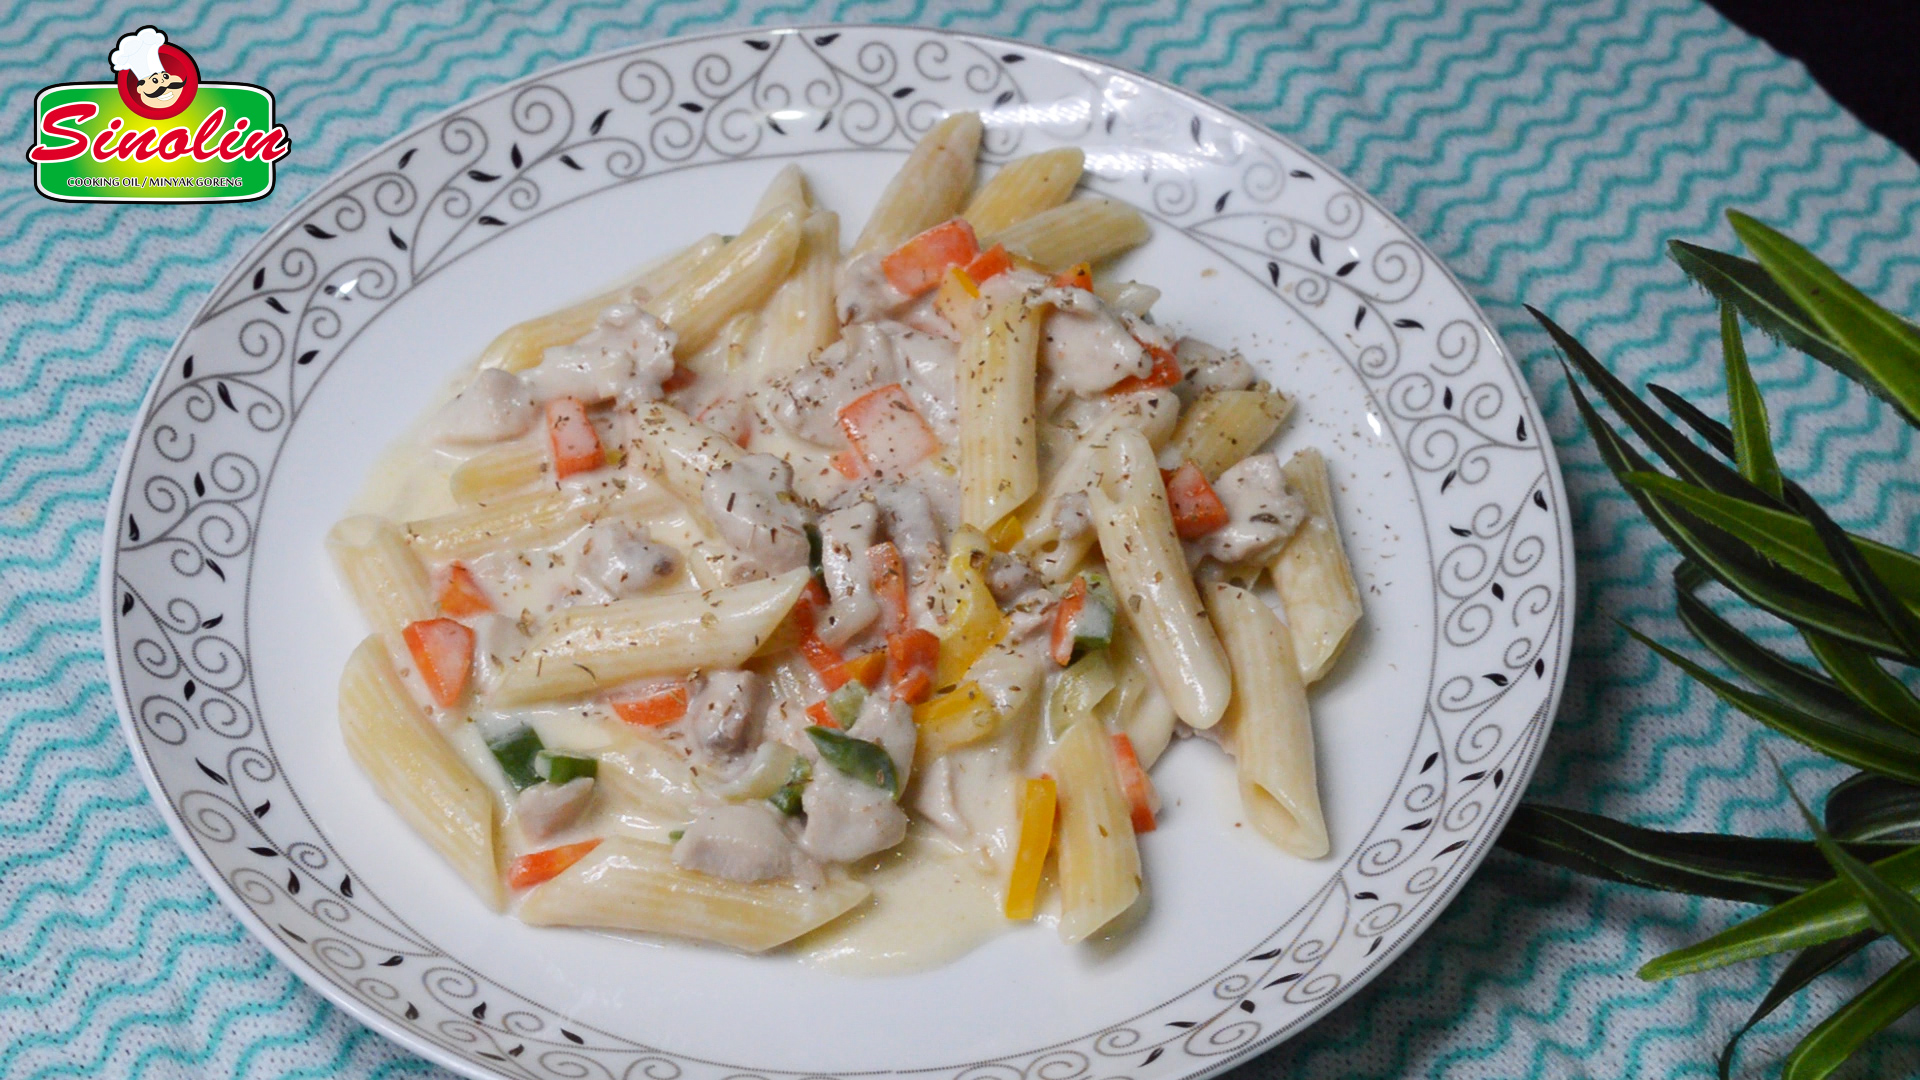 Chicken Macaroni and Cheese by Dapur Sinolin